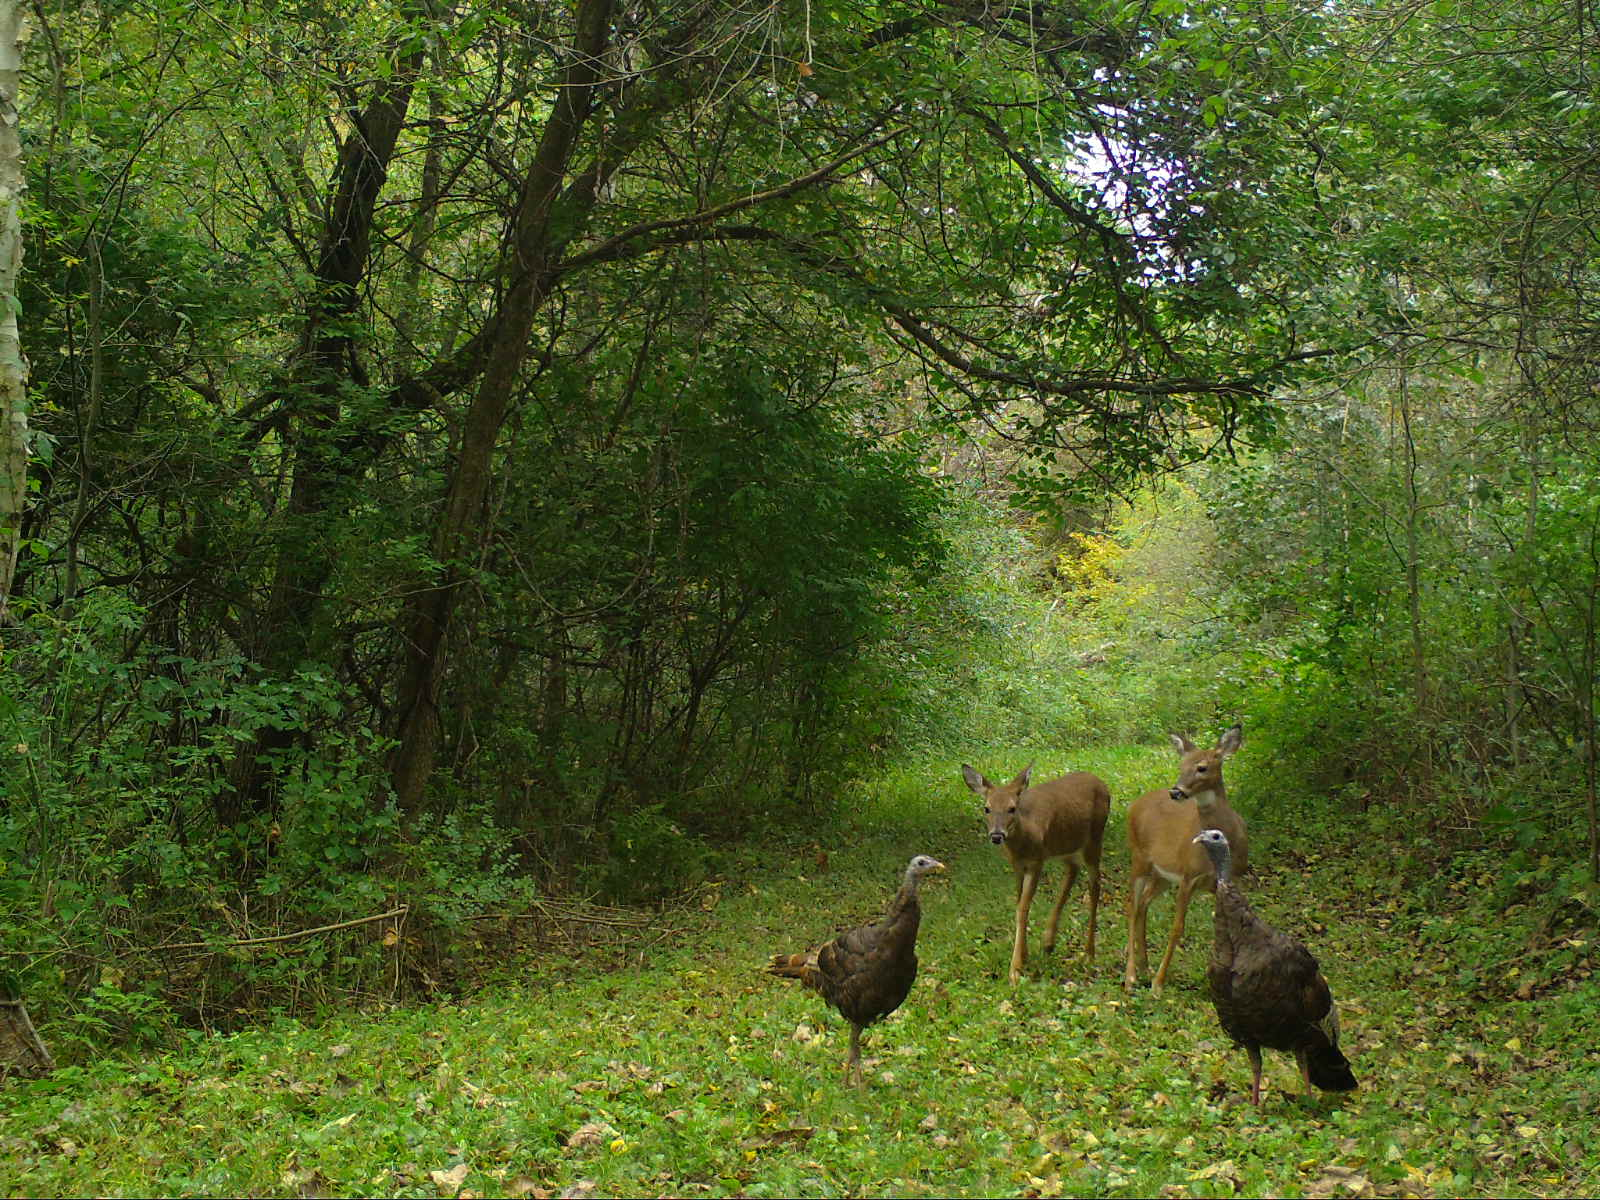 Two turkeys and two deer